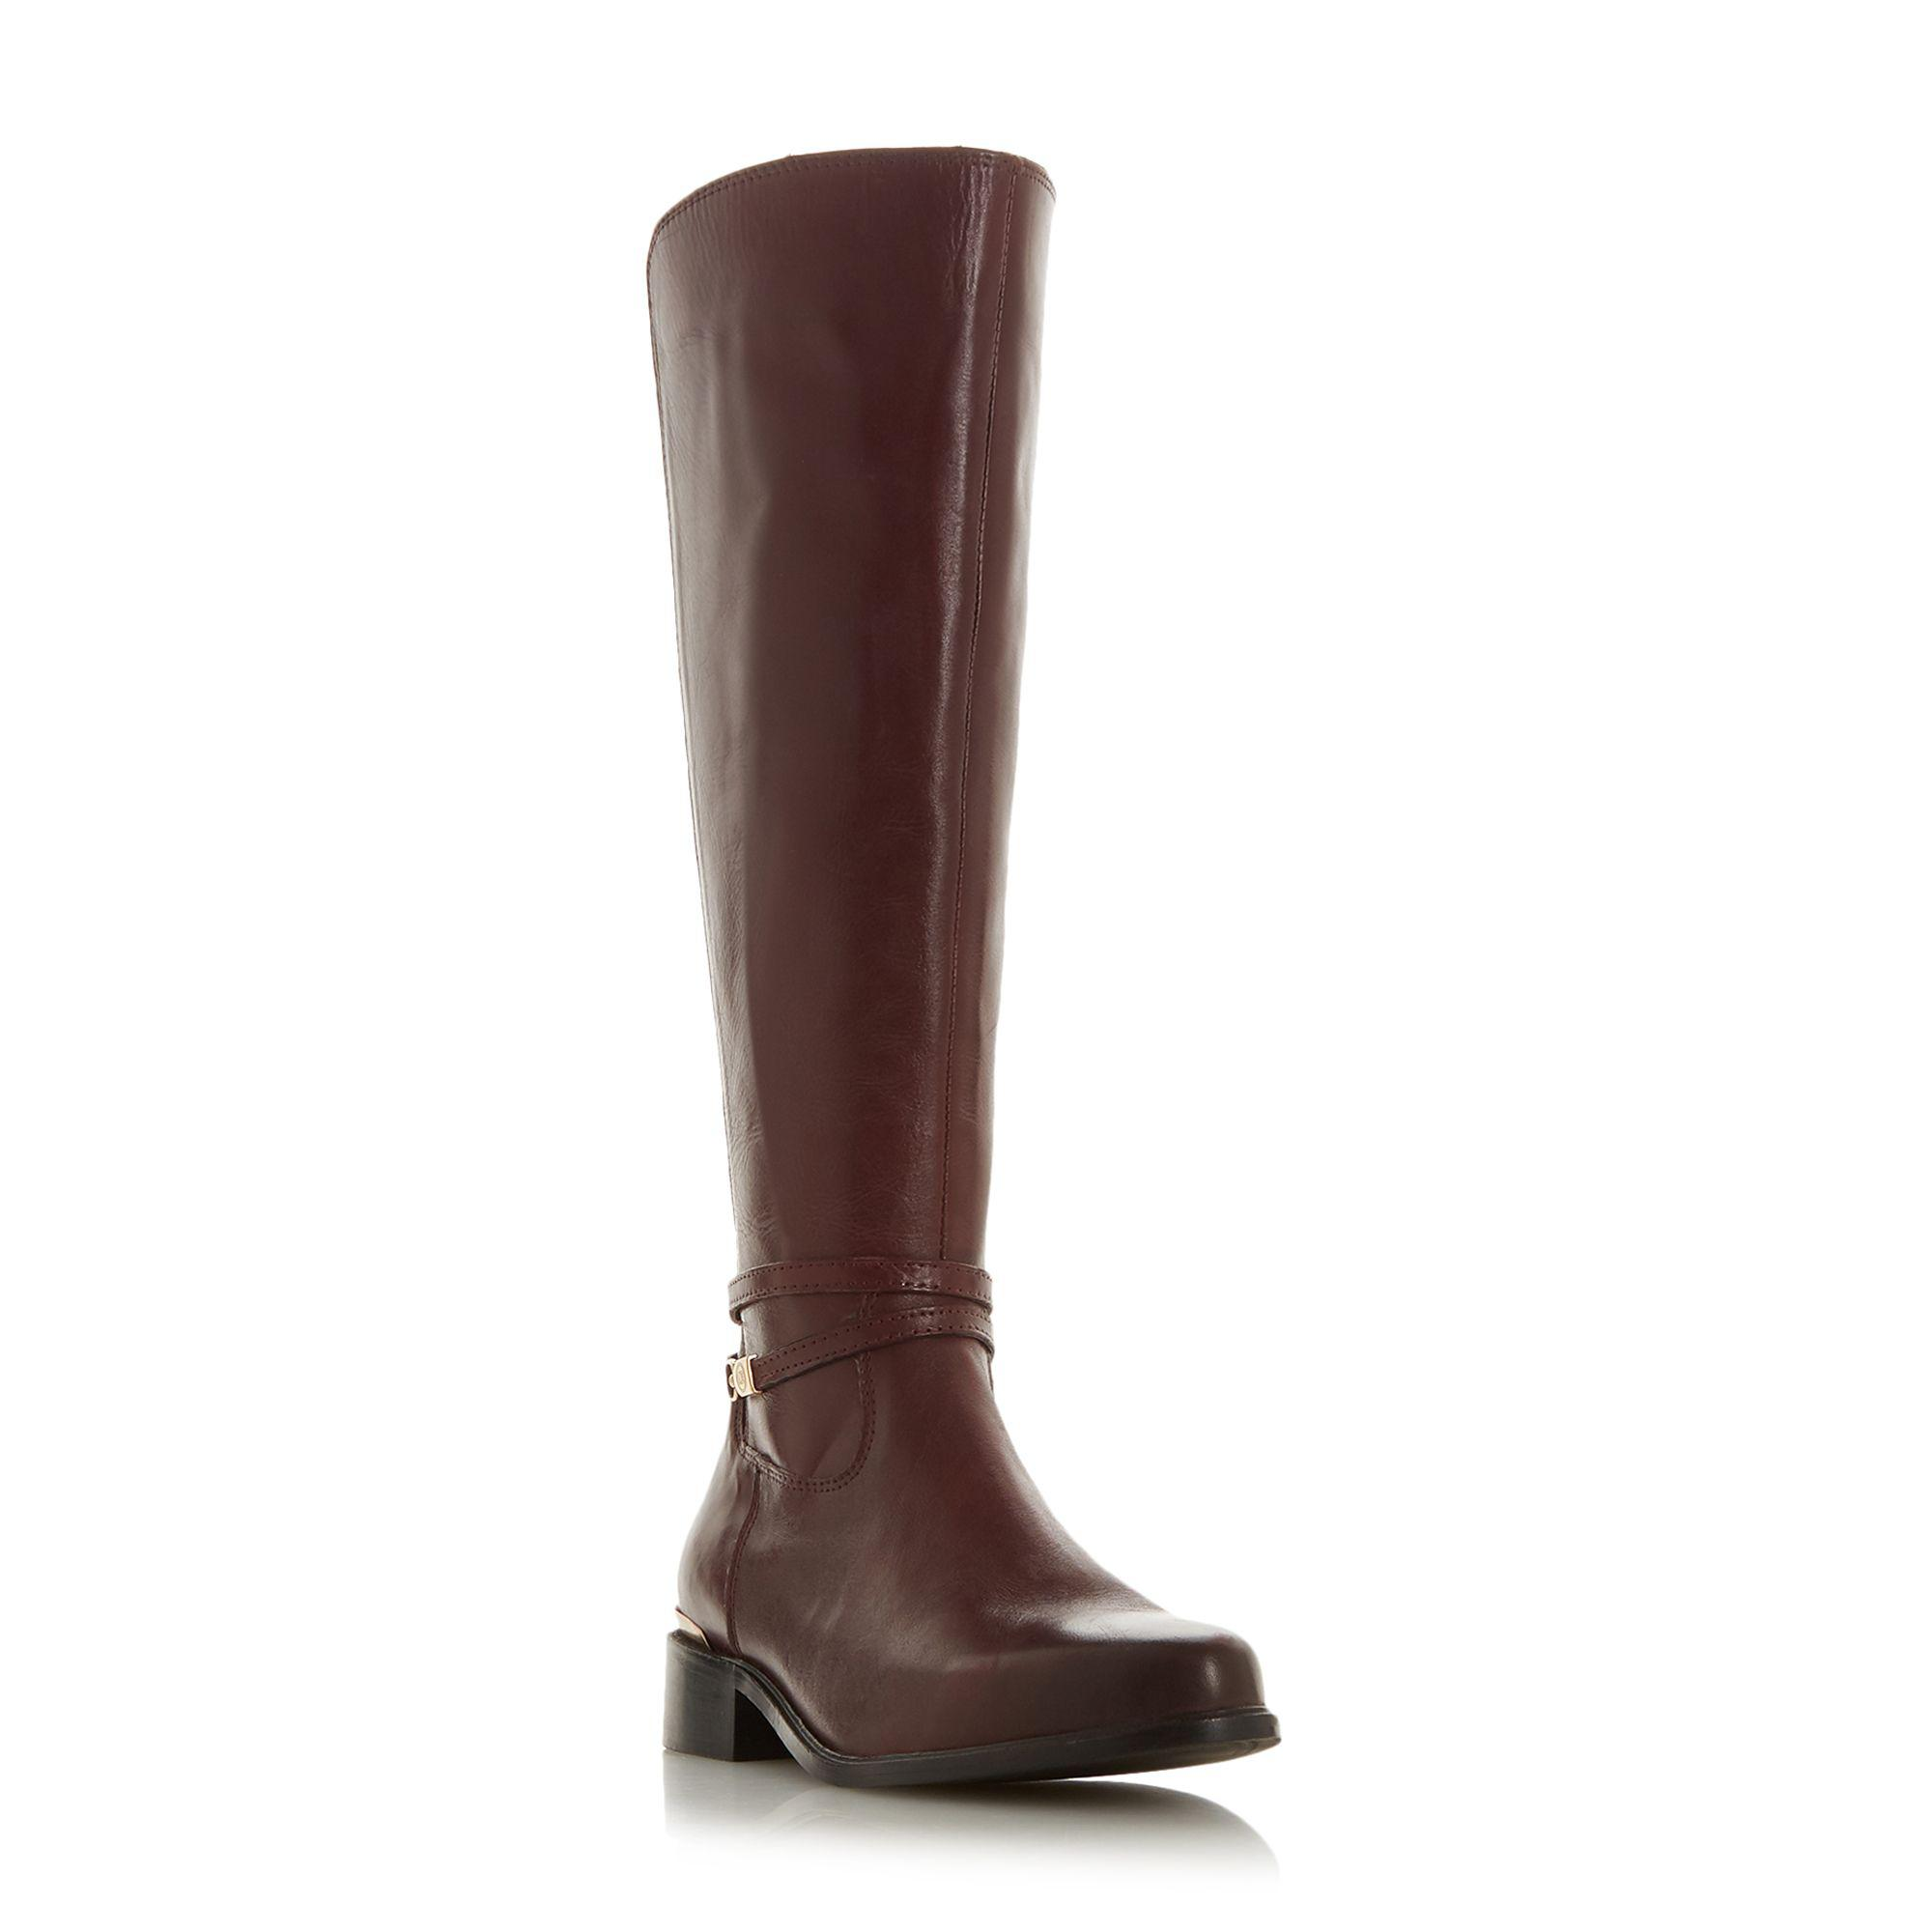 d9fc4d318abb Dune Maroon Leather  traviss  Knee High Boots in Brown - Lyst